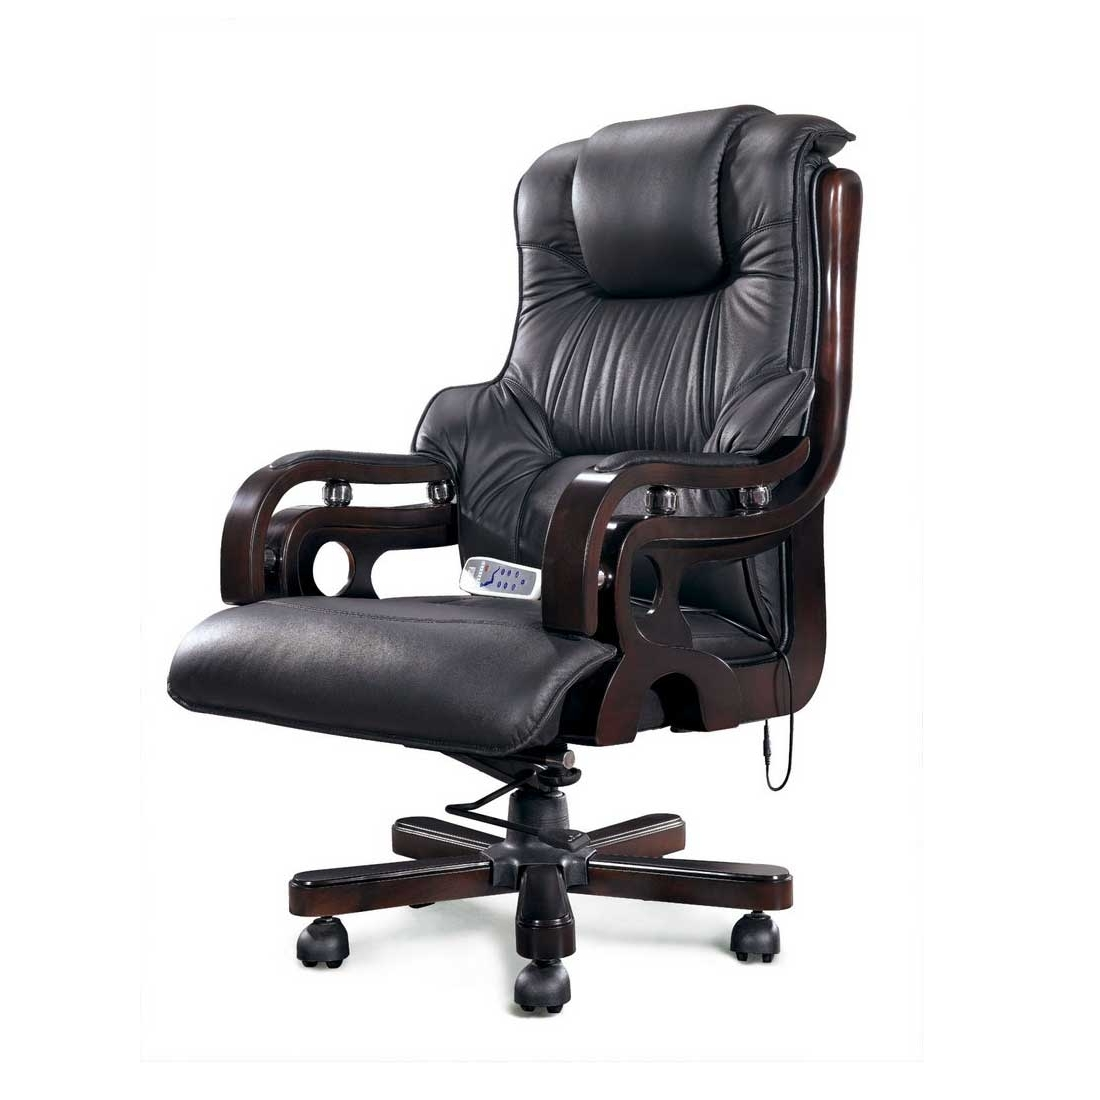 Best And Newest Elegant Unique Office Chair In Styles Of Chairs With Additional 32 Intended For Quality Executive Office Chairs (View 20 of 20)